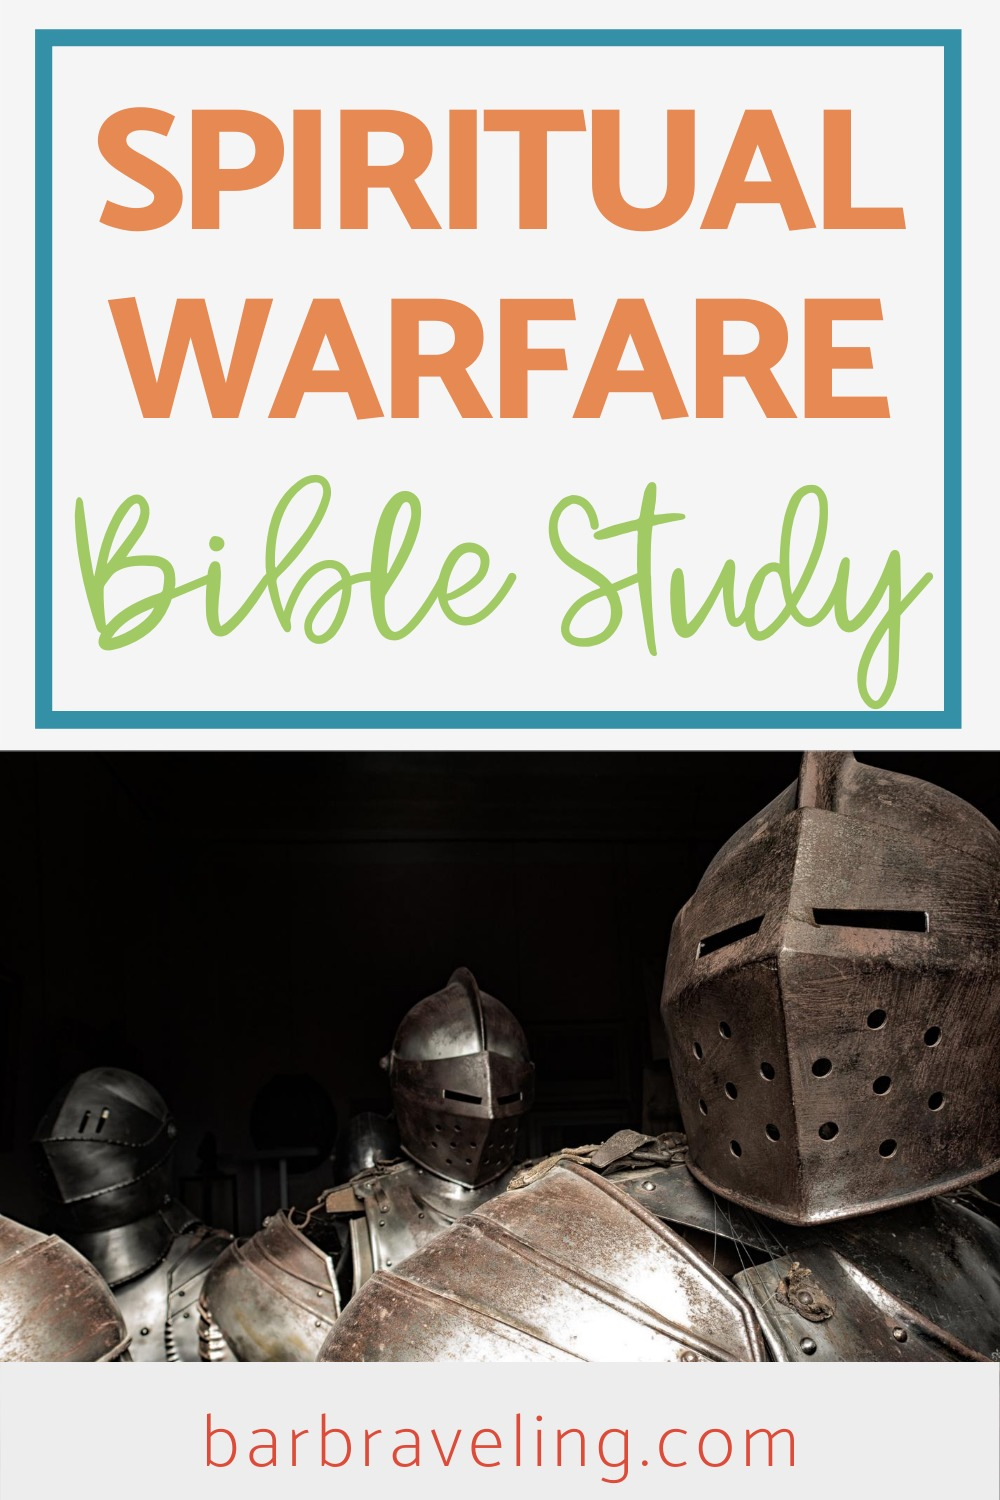 Do you have a spiritual goal you're working towards? Satan will do all in his power to keep you from reaching it. This Bible study can help you learn how to fight a spiritual warfare and overcome your enemy.